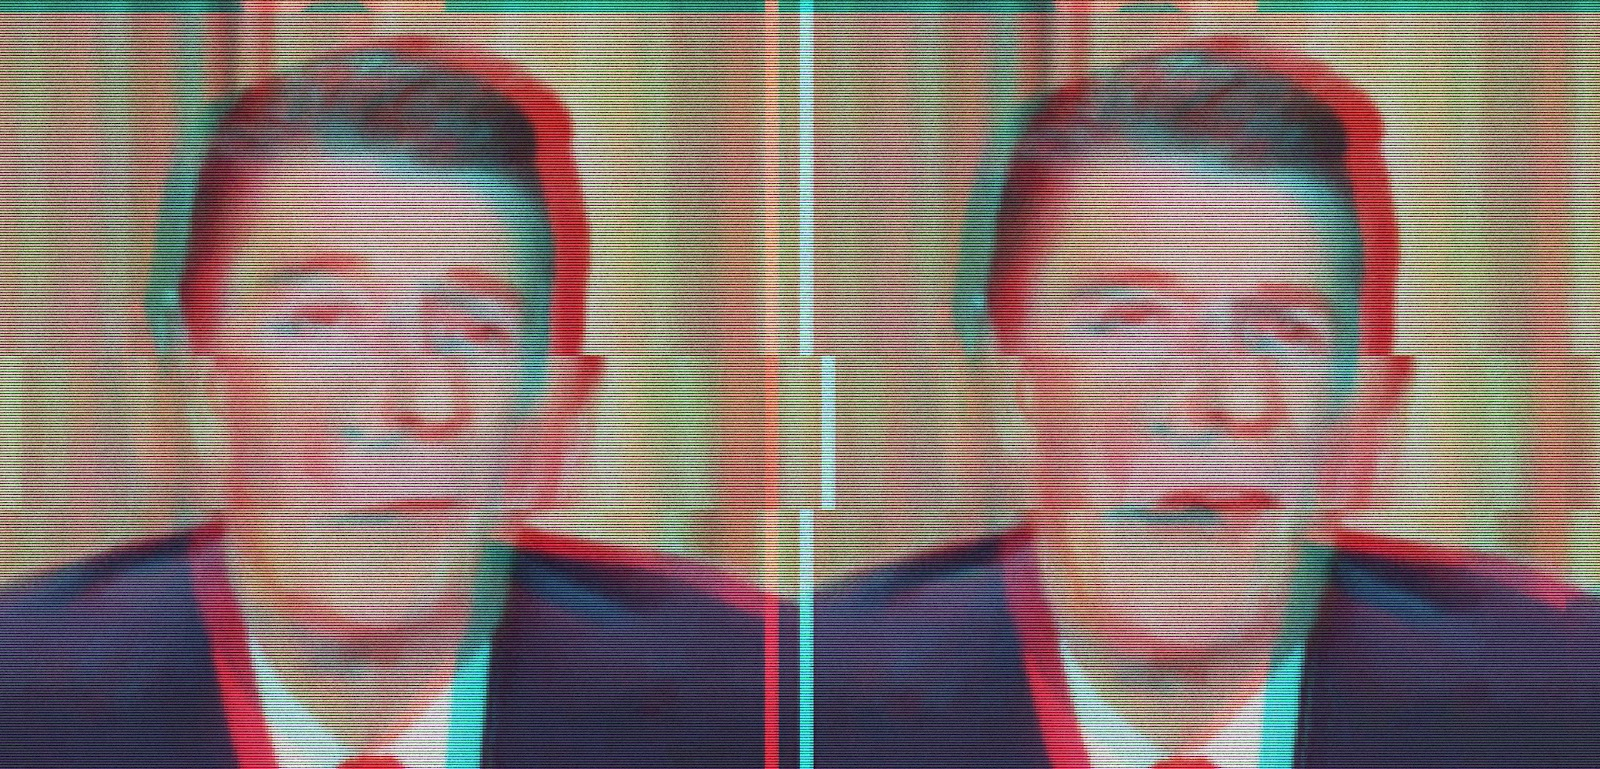 Distorted image of Ronald Reagan on TV